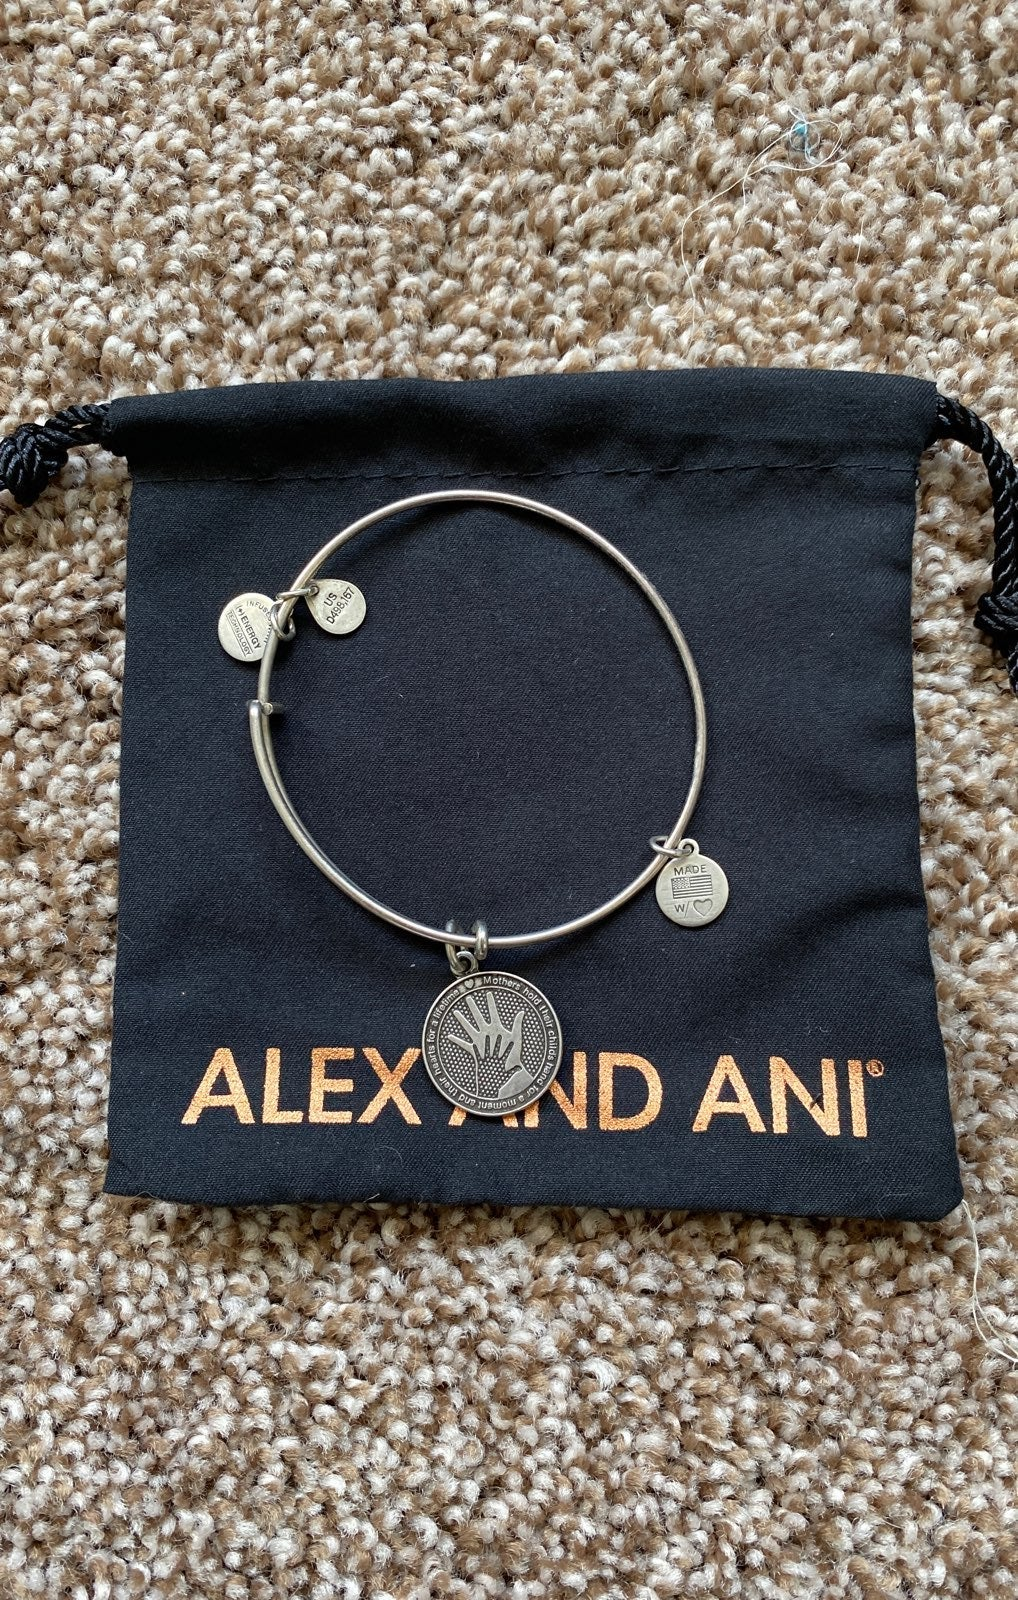 Alex and Ani bracelet - hand in hand mot